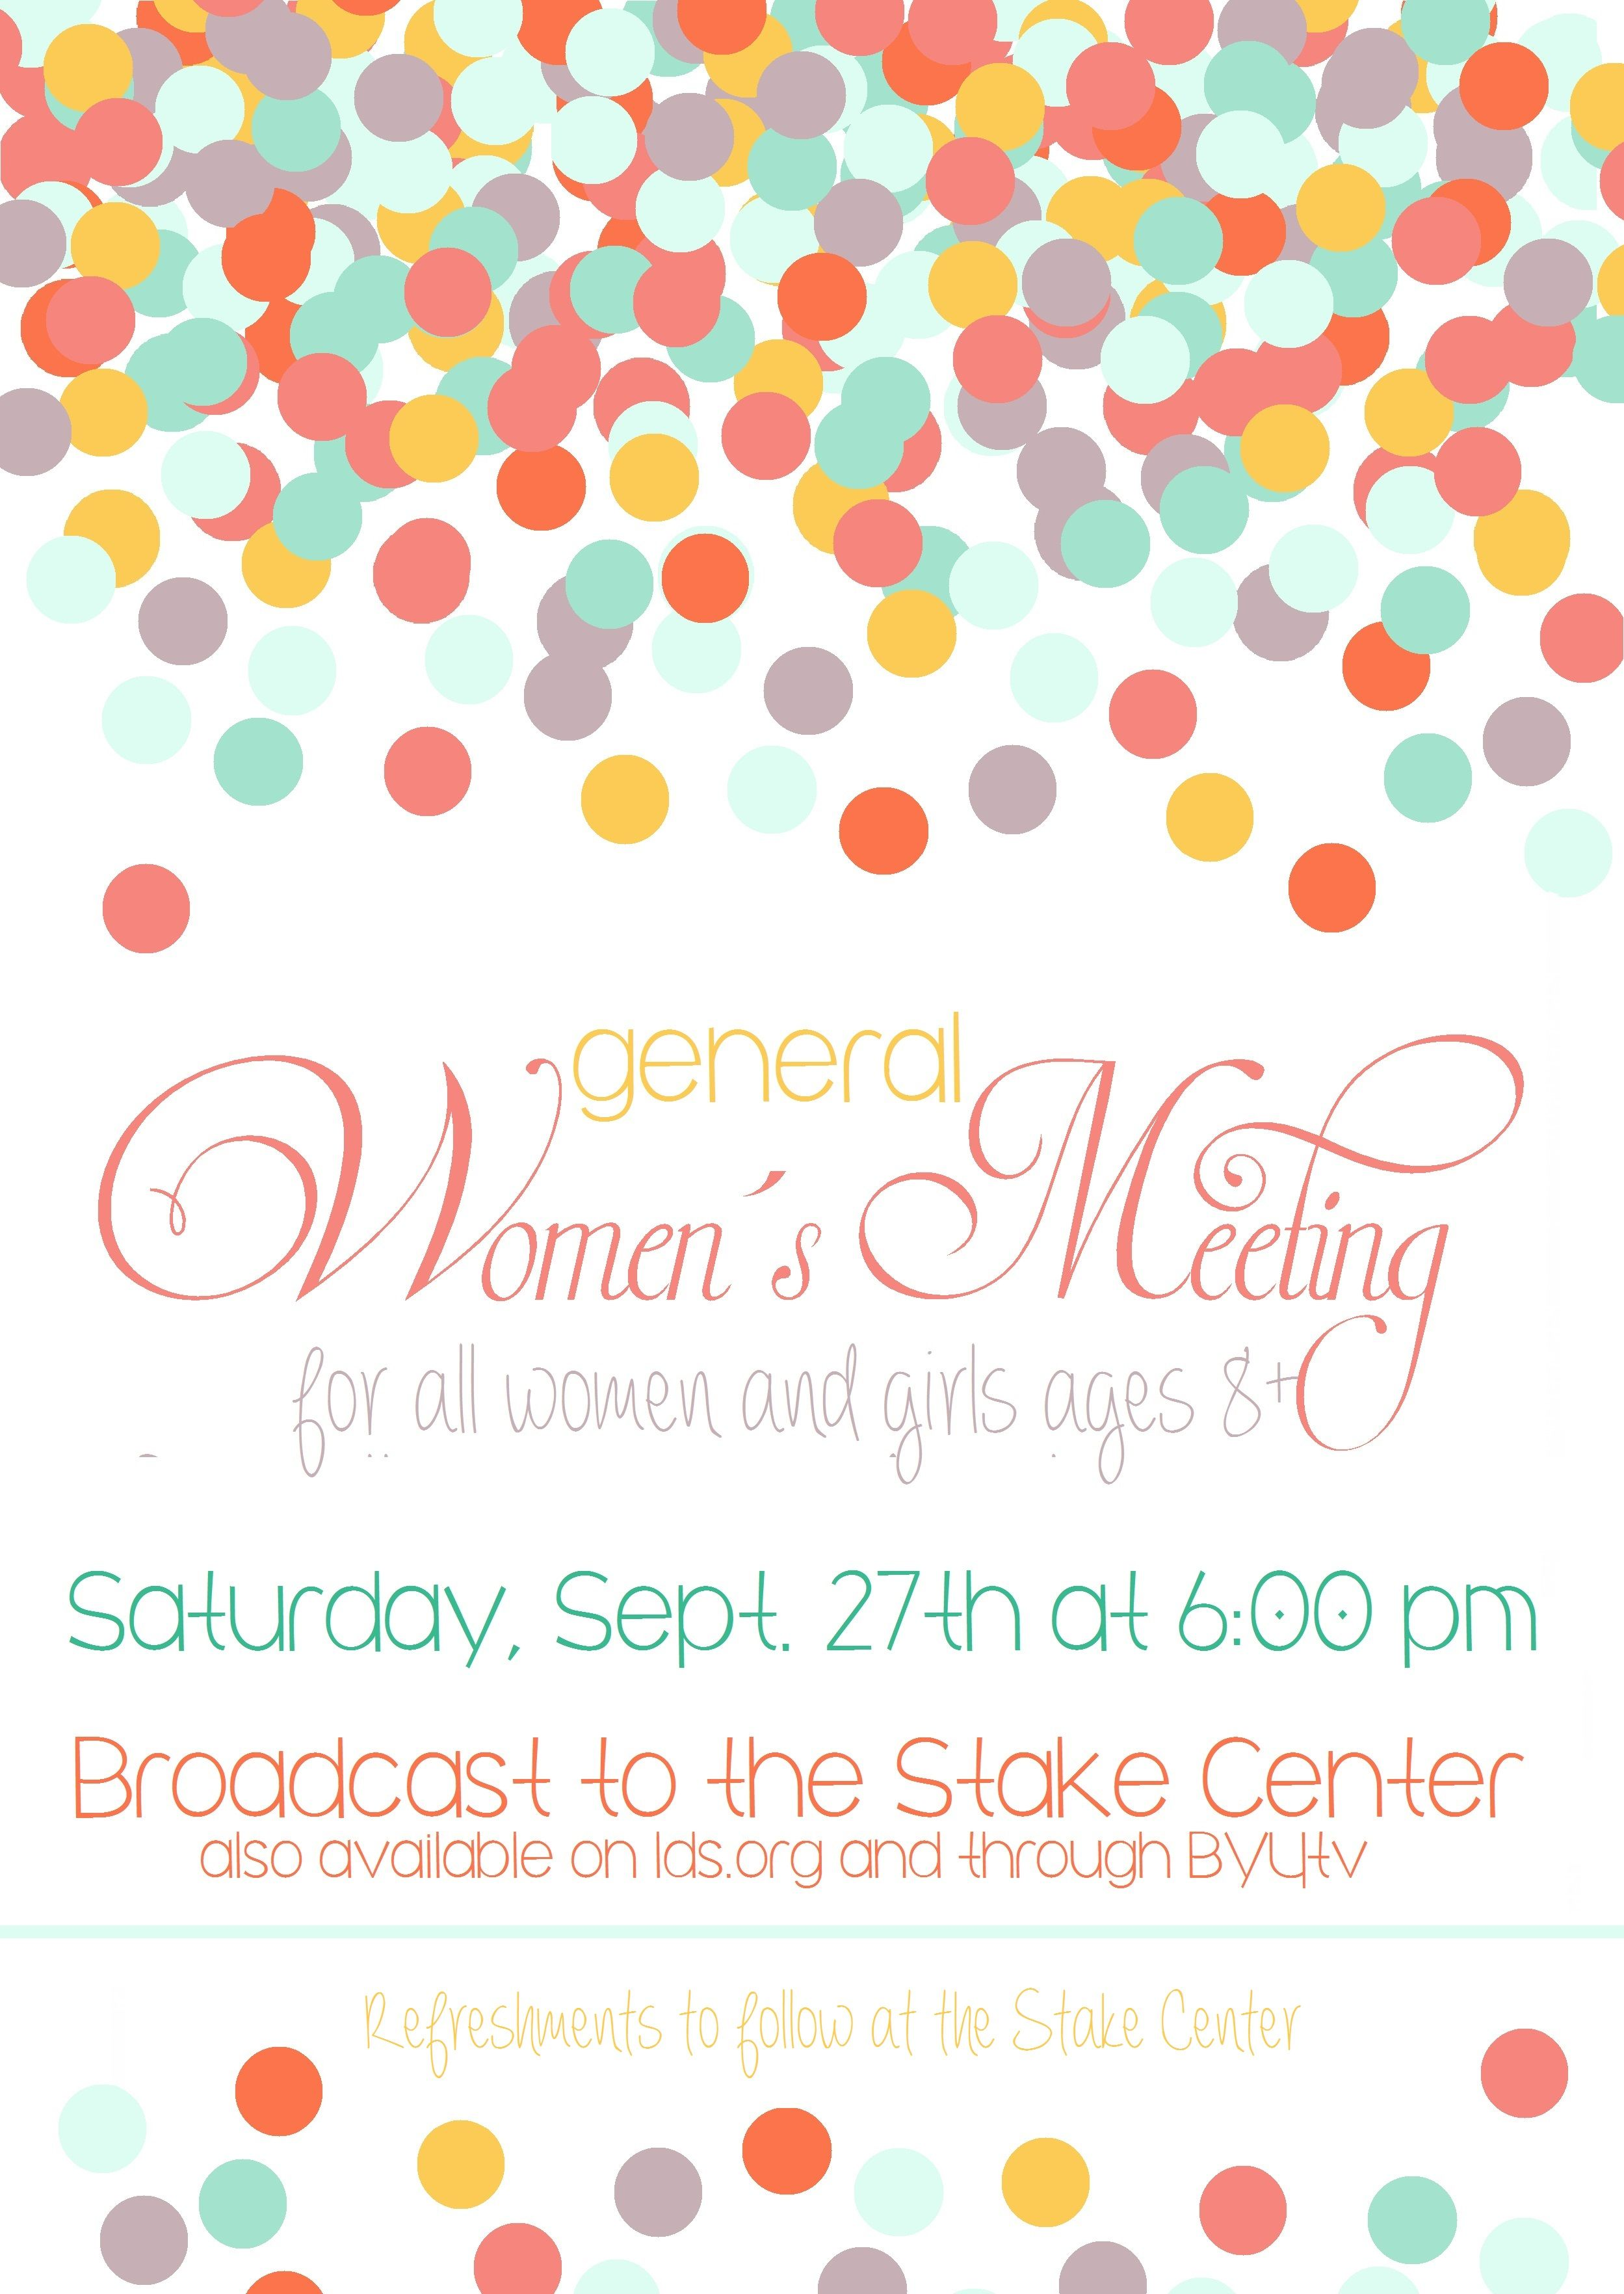 general womens meeting lds conference invitation poster invite september free use google doc link https